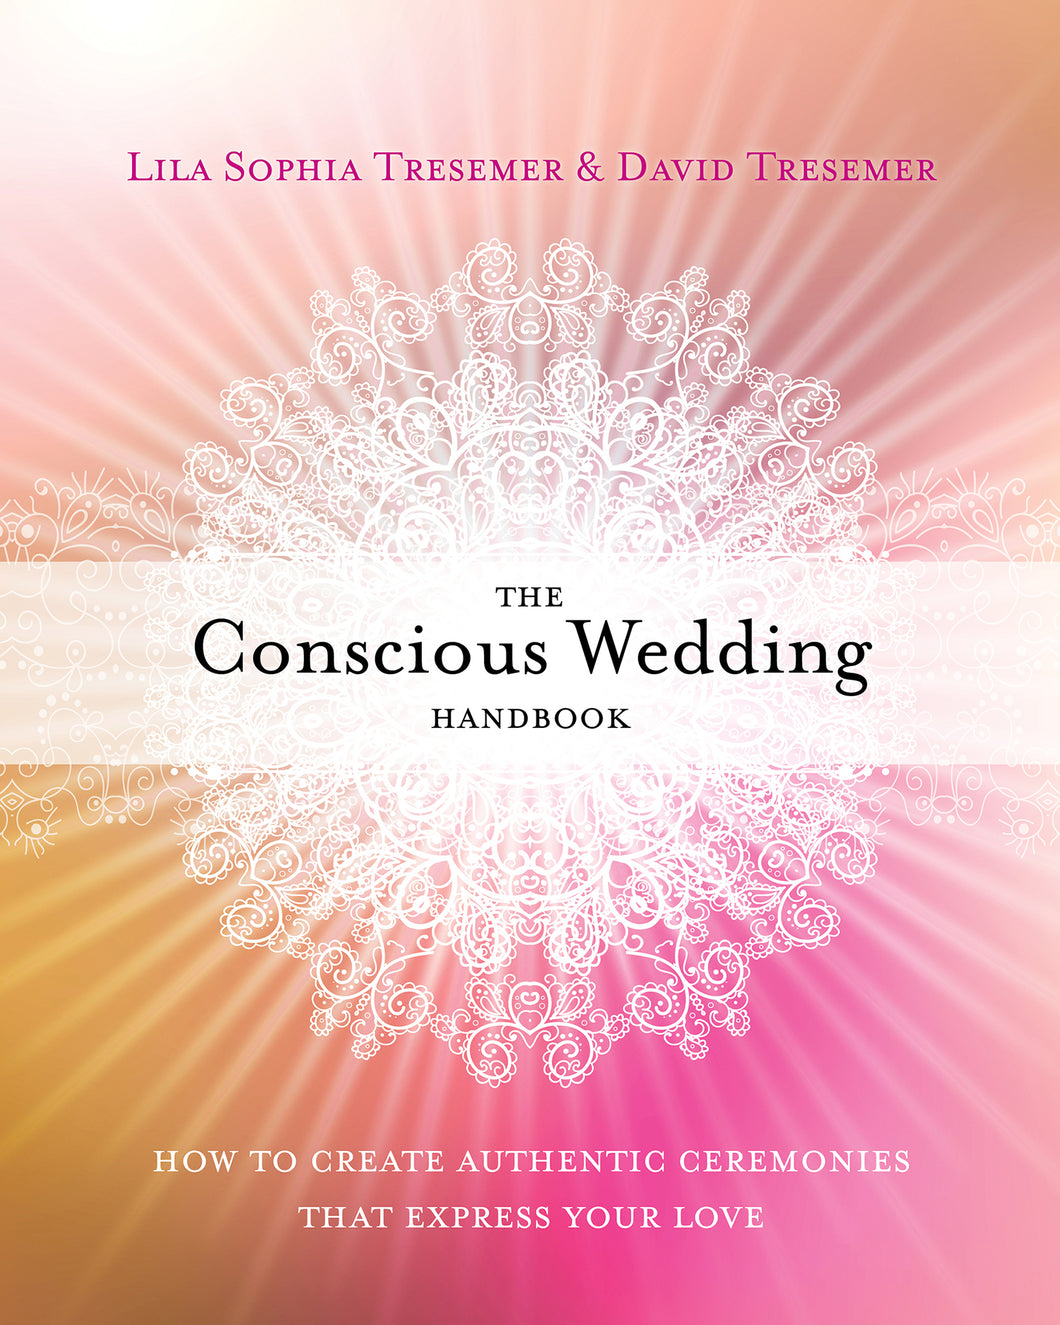 The Conscious Wedding Handbook